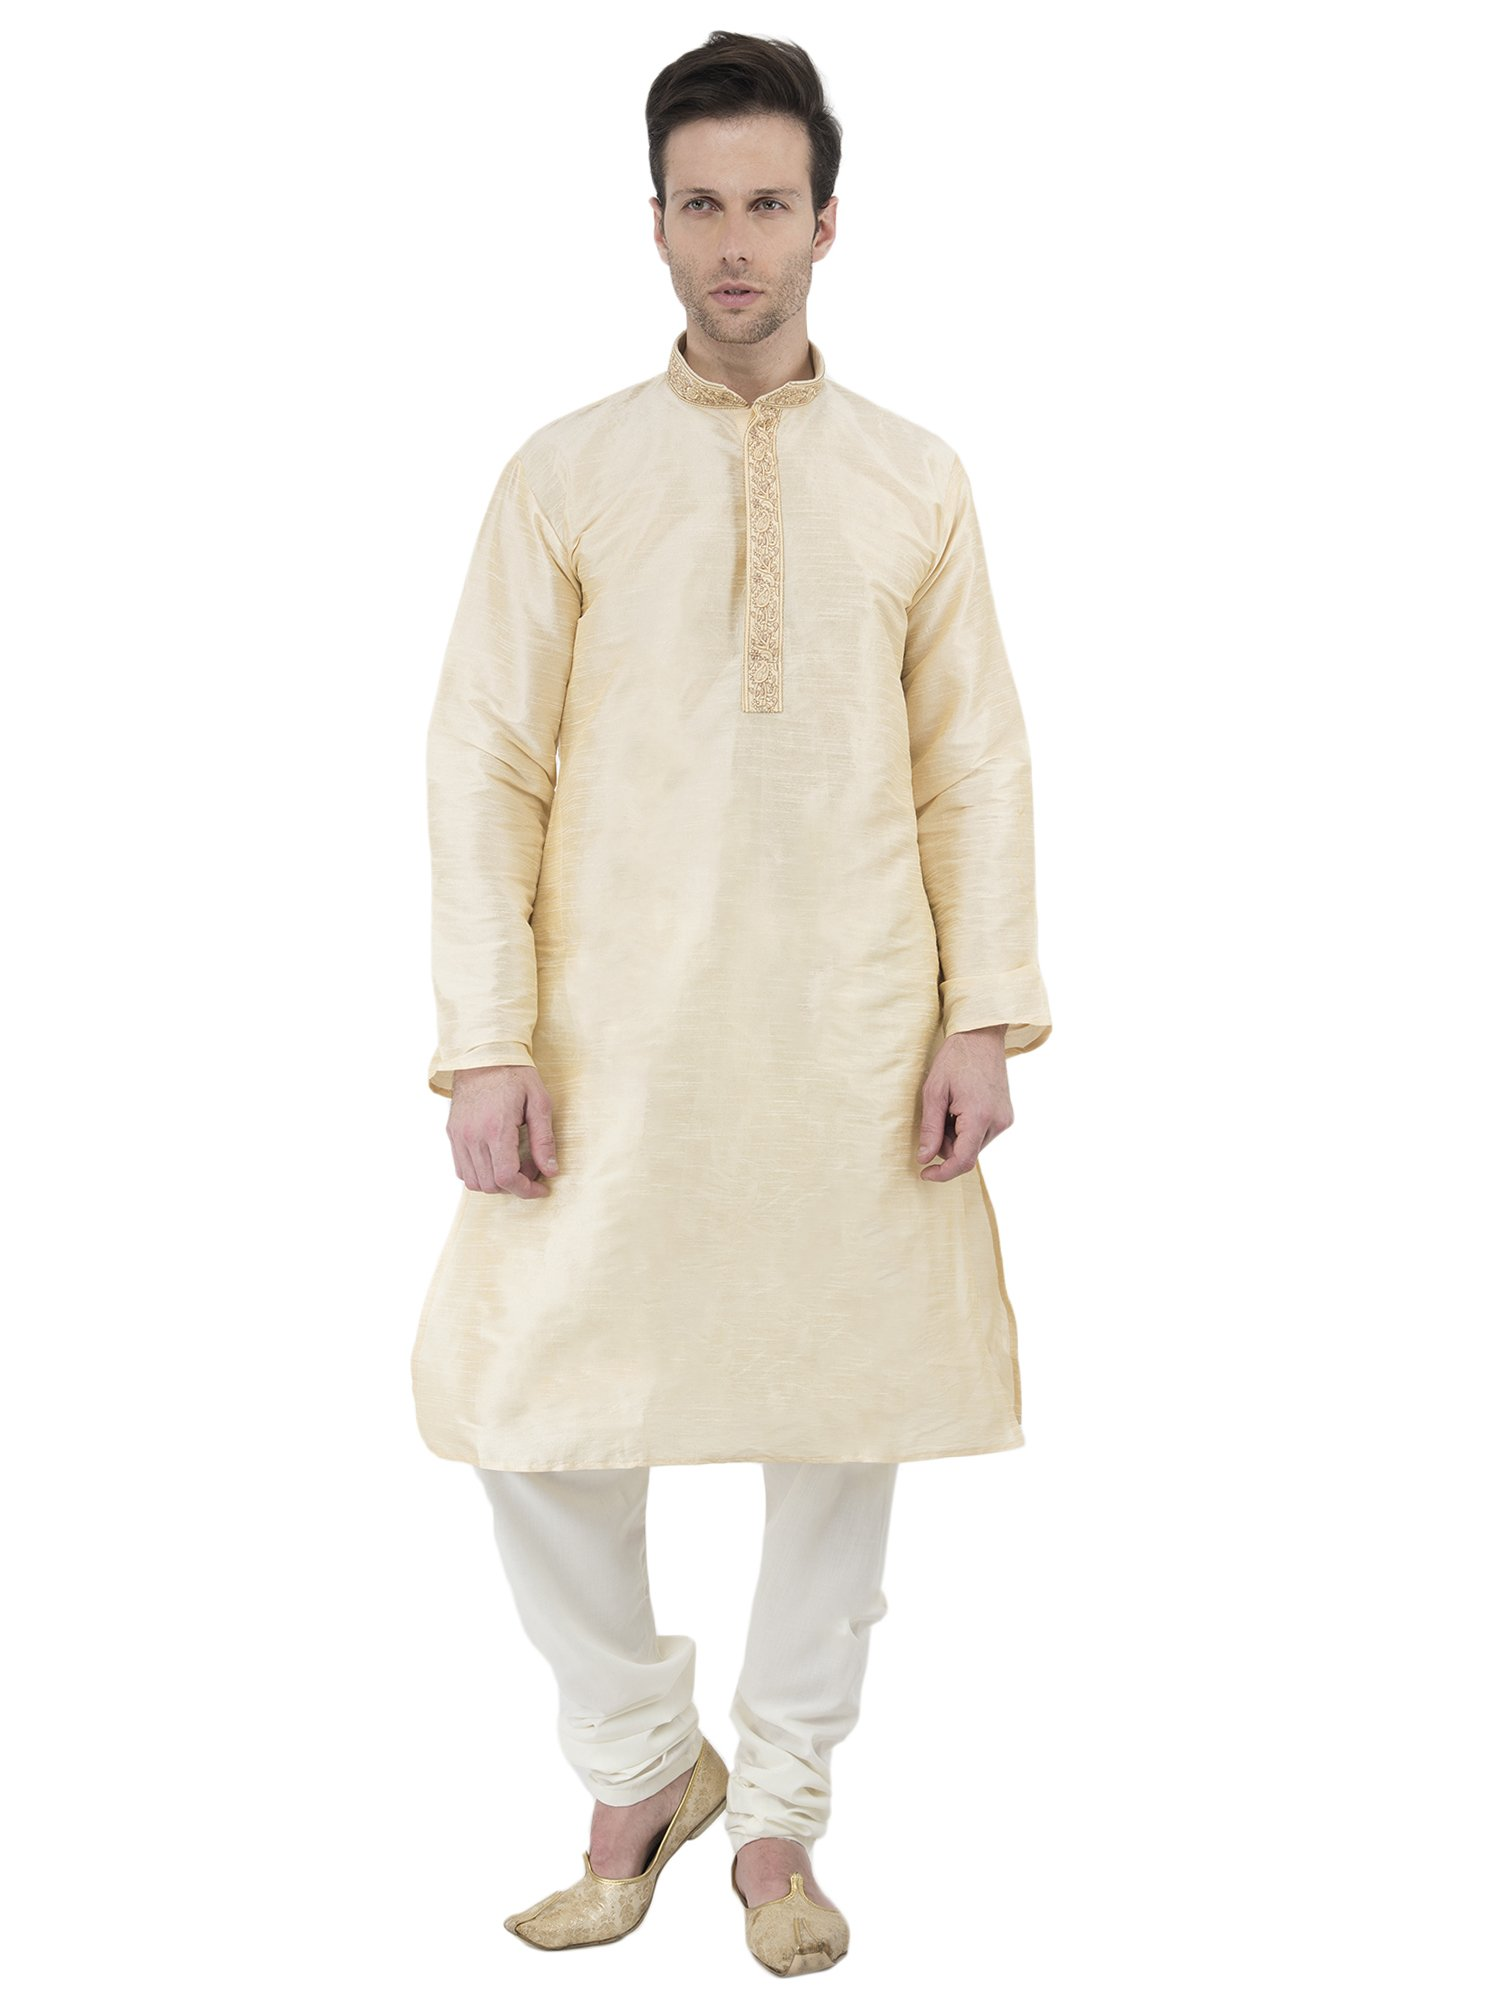 Indian Kurta Pajama Men Long Sleeve Button Down Shirt Pyjama Set Ethnic Wear Wedding Outfit -M